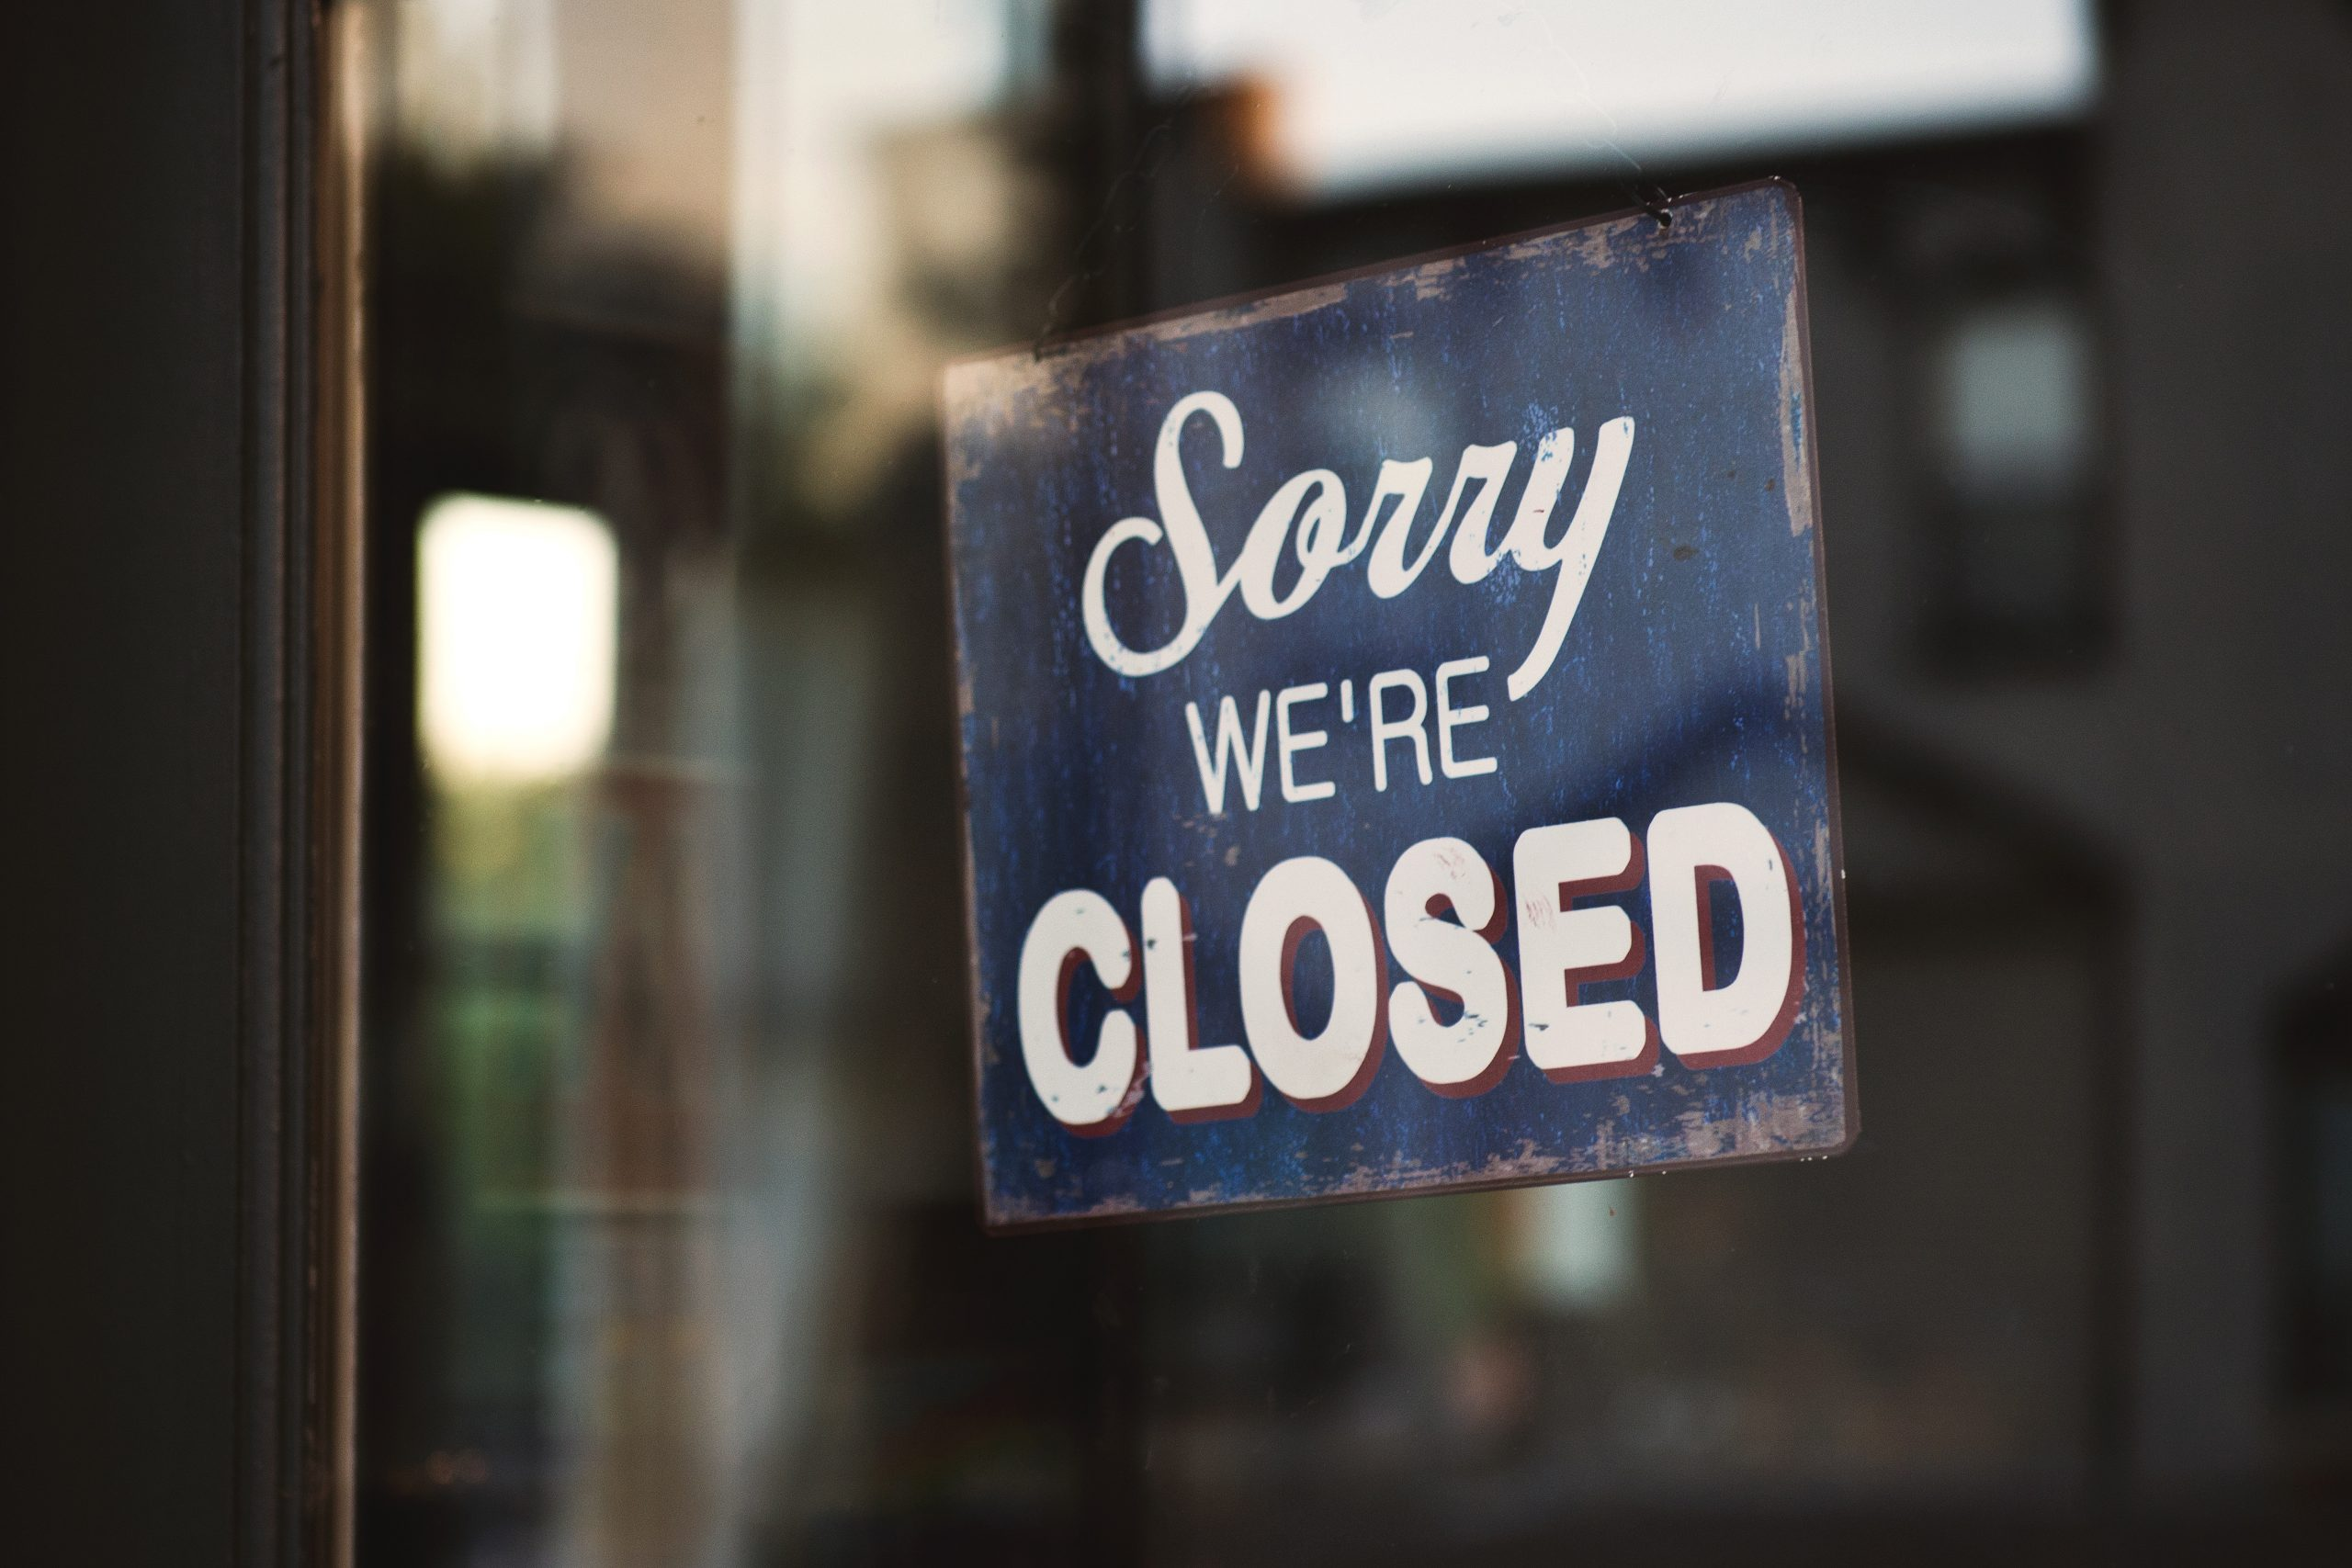 Sorry we're closed signage hanged on glass door